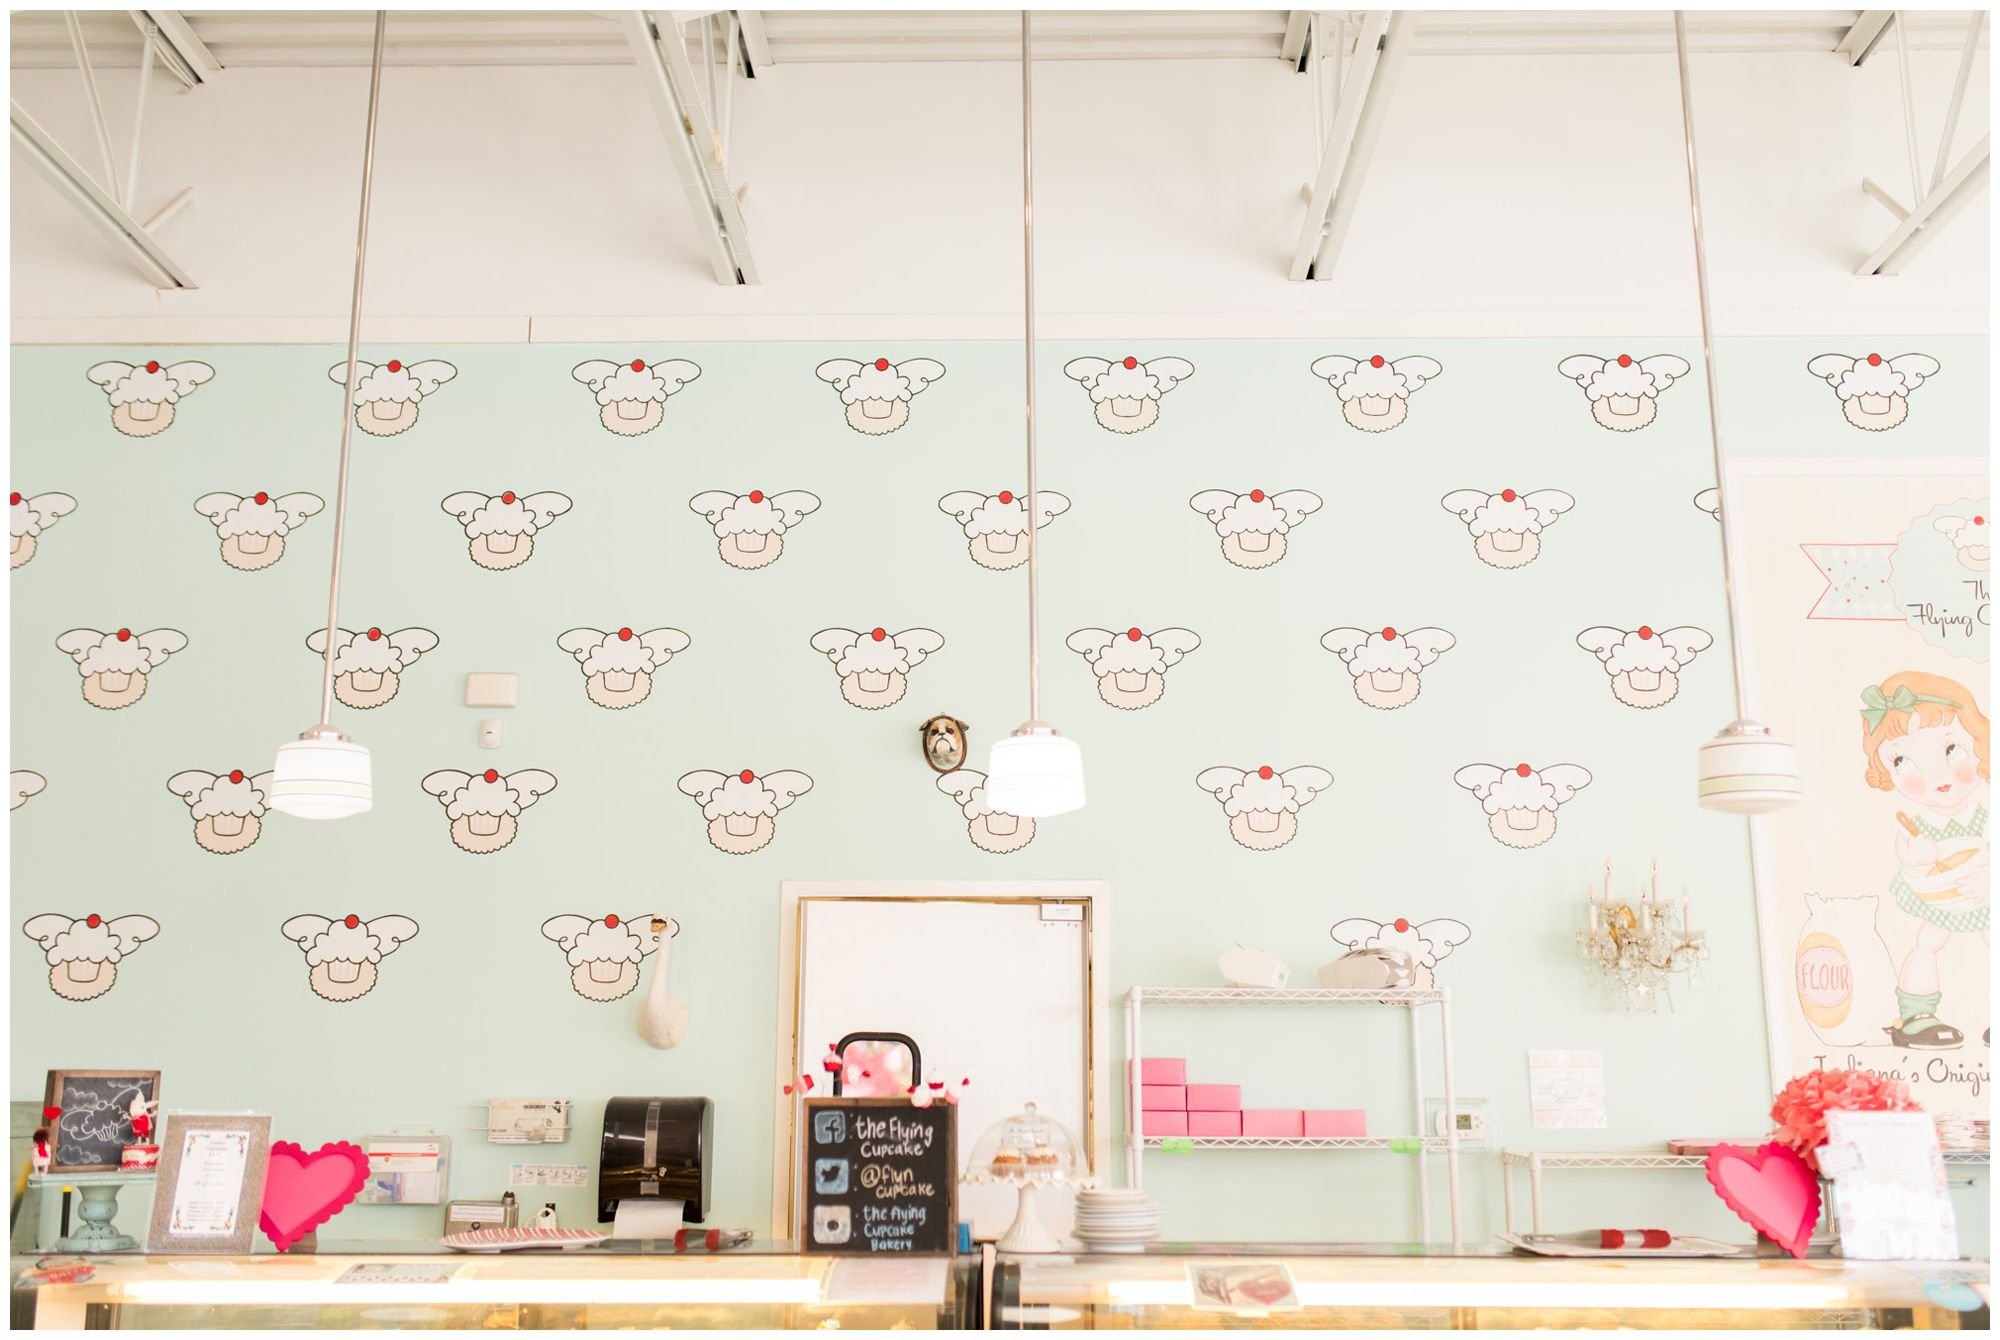 interior of The Flying Cupcake in Carmel Indiana